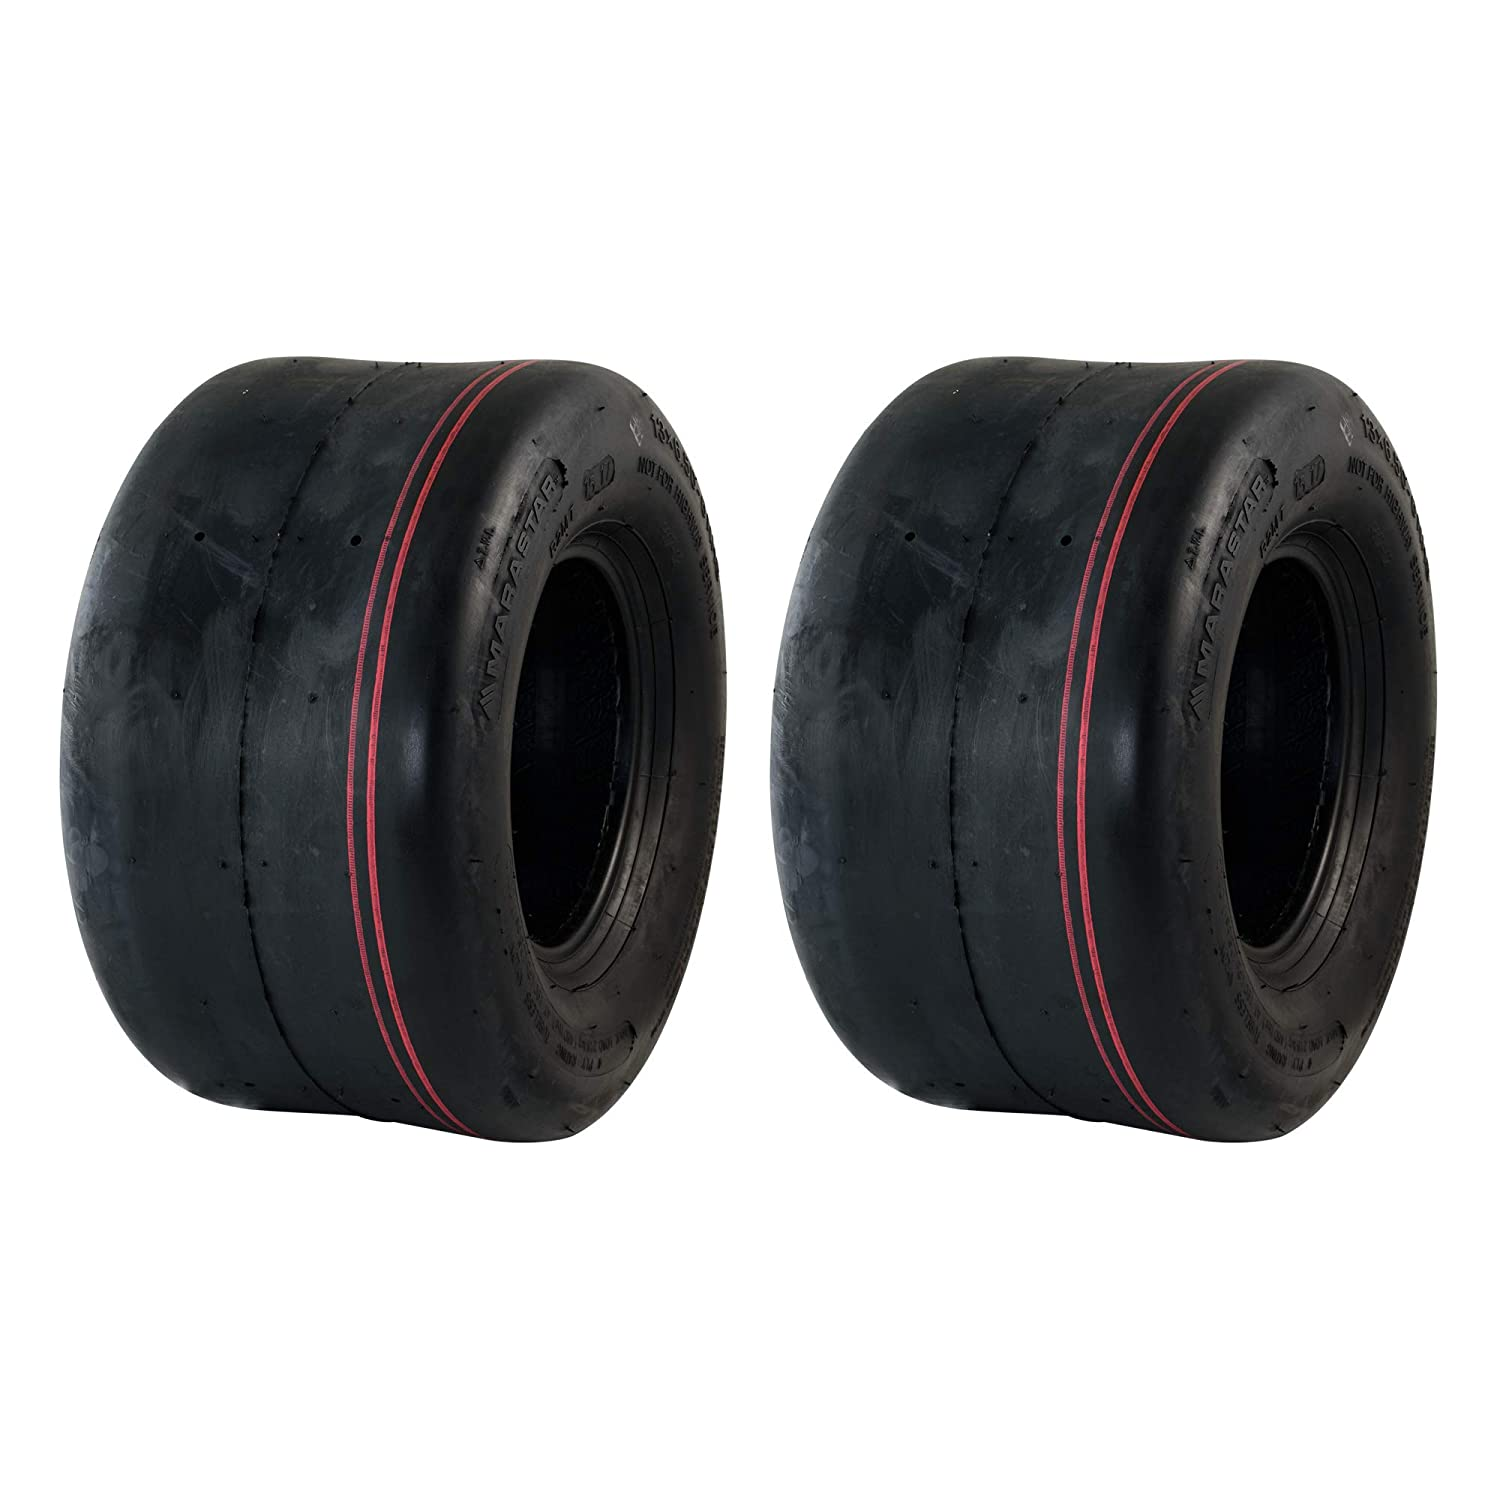 MARASTAR 20260-2pk Smooth 13x6.50-6 Replacement Lawnmower Tire Only, Black